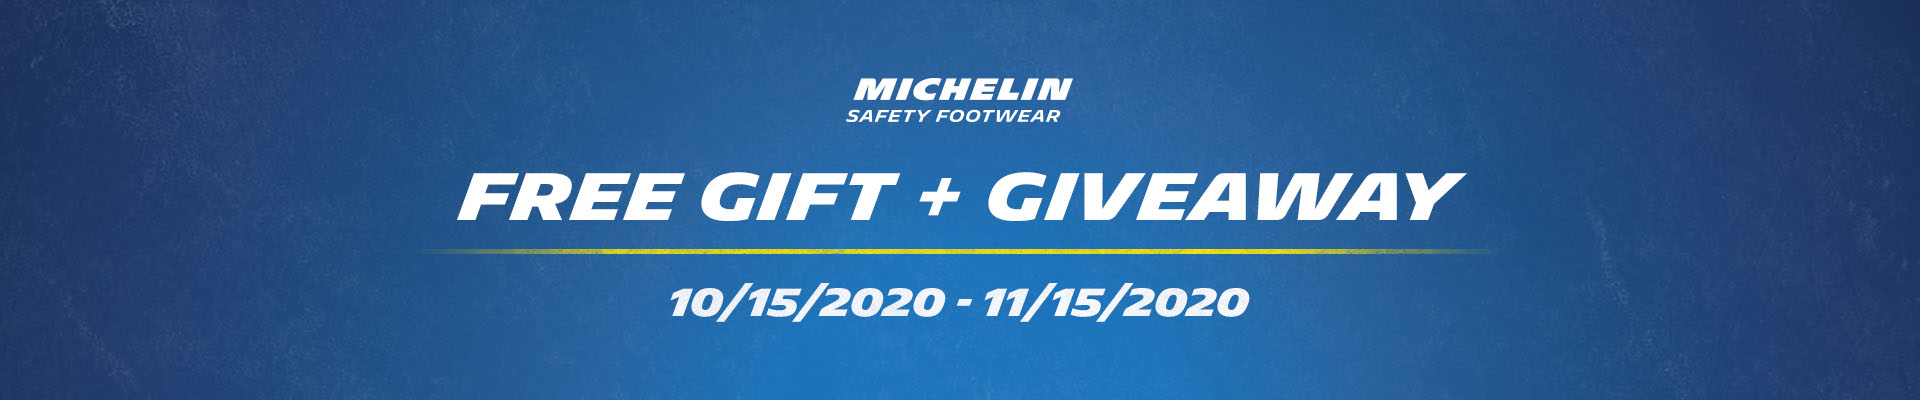 Michelin GWP + Giveaway Banner